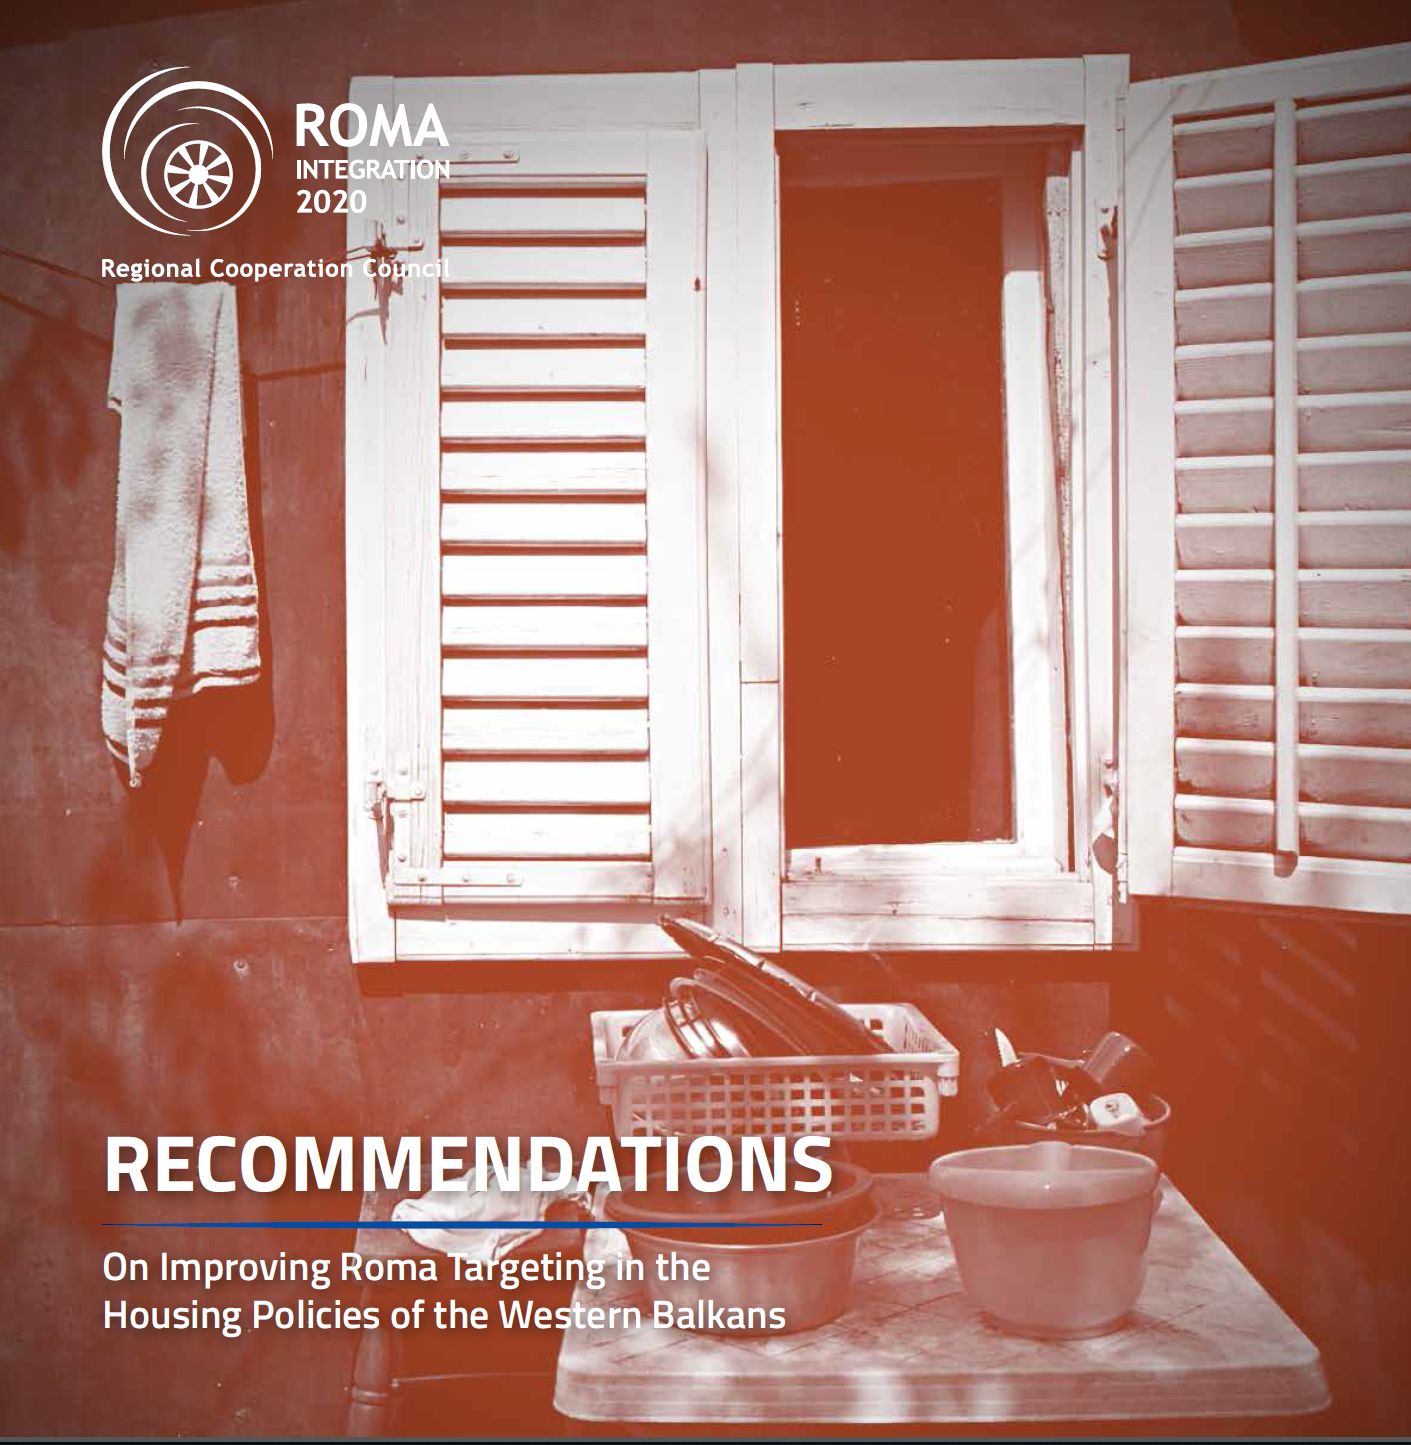 Recommendations on Improving Roma Targeting in the Housing Policies of the Western Balkans